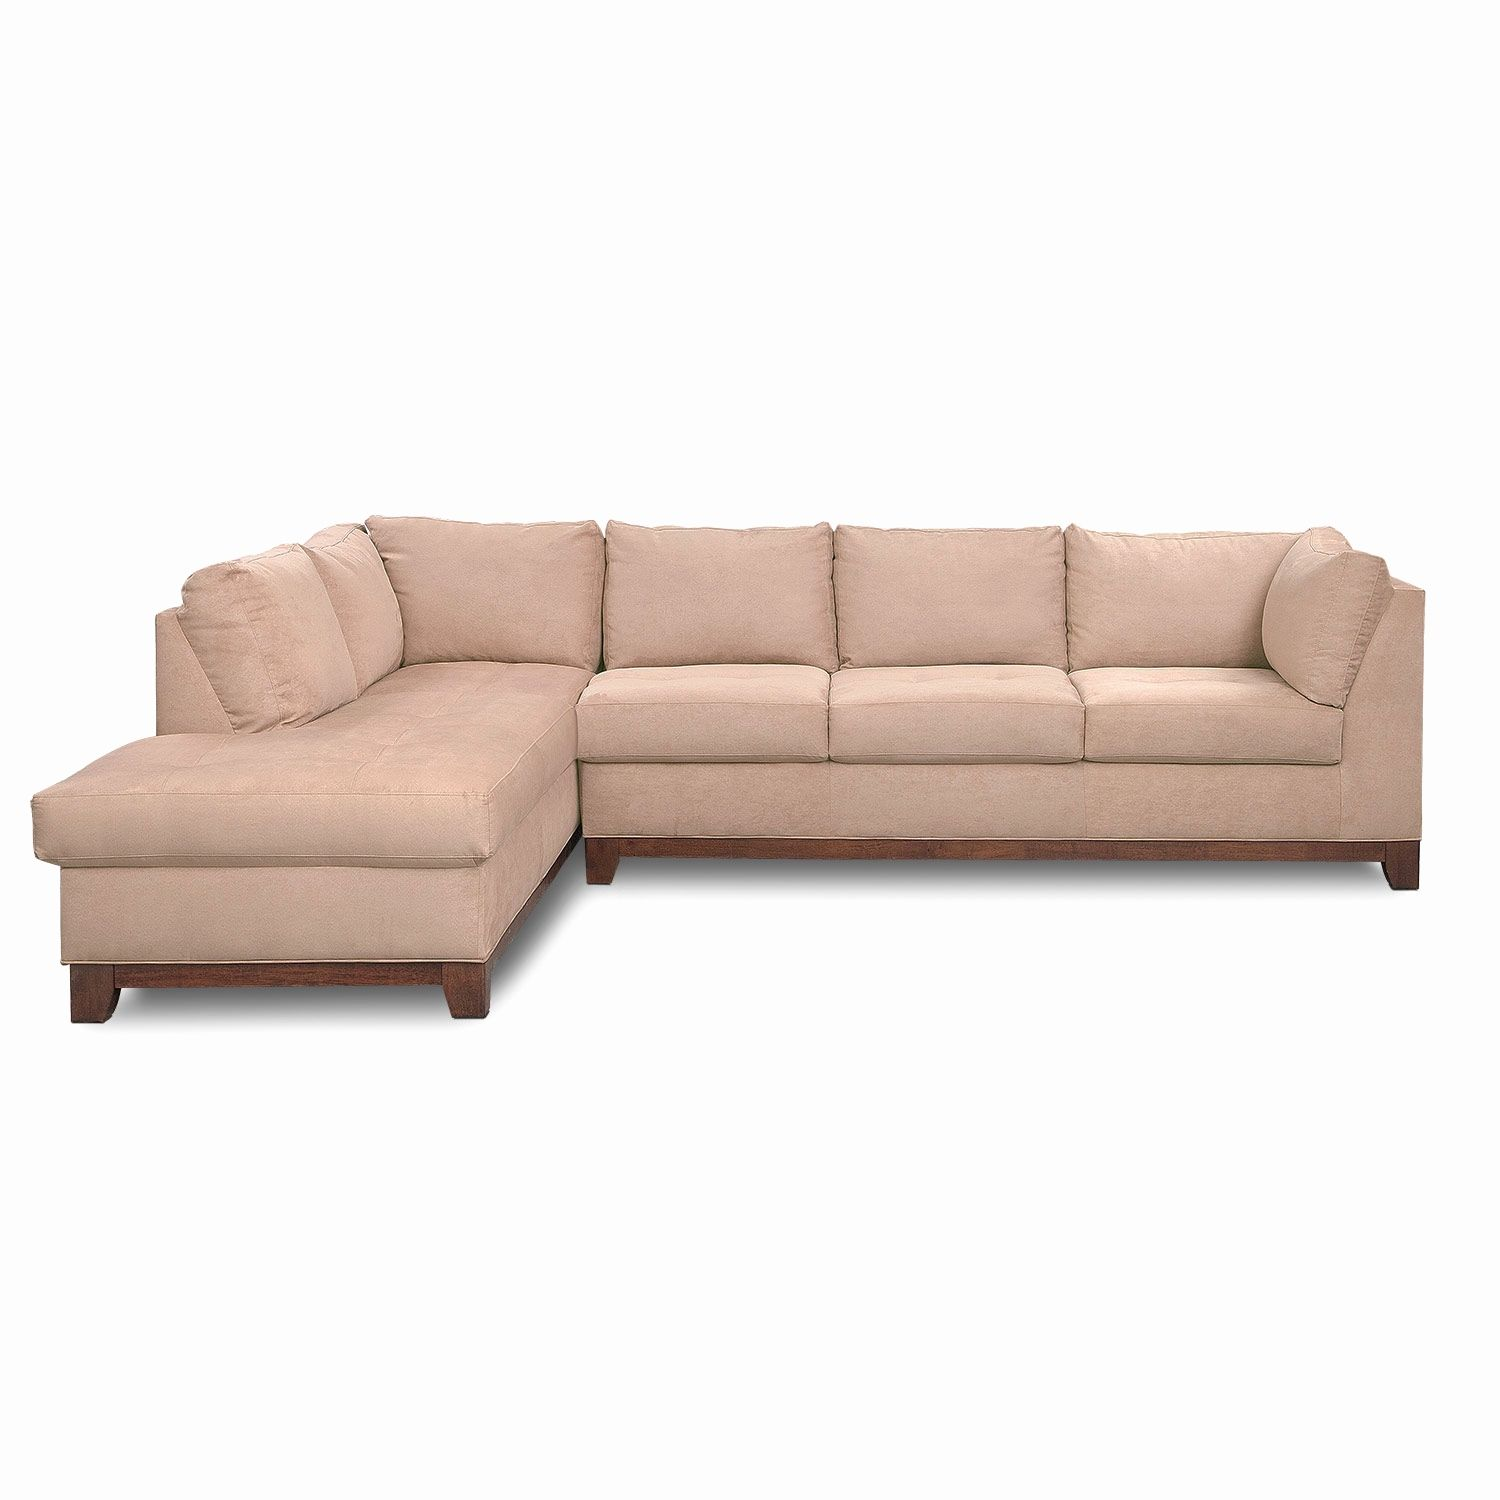 Lovely Value City Sectional sofa Value City Sectional sofa